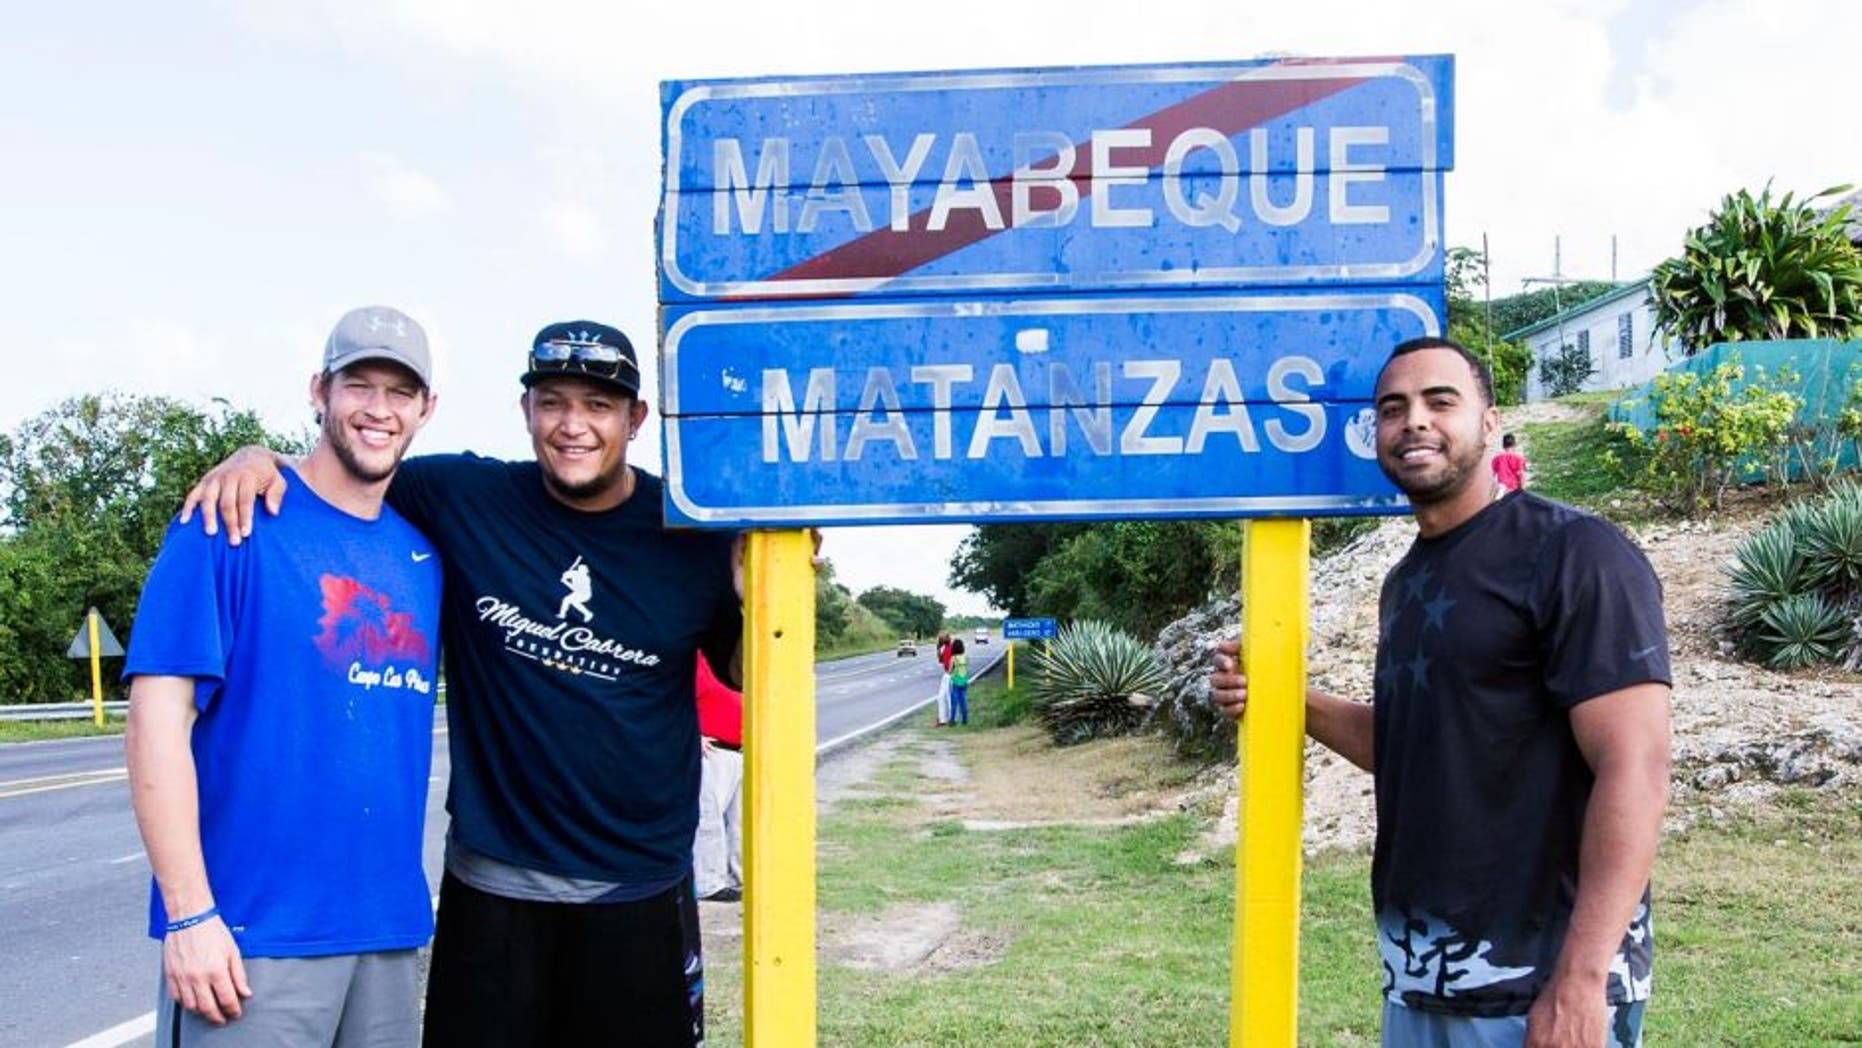 MATANZAS, CUBA - DECEMBER 17: Clayton Kershaw of the Los Angeles Dodgers, Miguel Cabrera of the Detroit Tigers, and Nelson Cruz of the Seattle Mariners pose for a photo on their way to a youth baseball clinic during an MLB goodwill tour on December 17, 2015 at Estadio Victoria de Giron in Matanzas, Cuba. (Photo by Rob Tringali/MLB Photos via Getty Images)